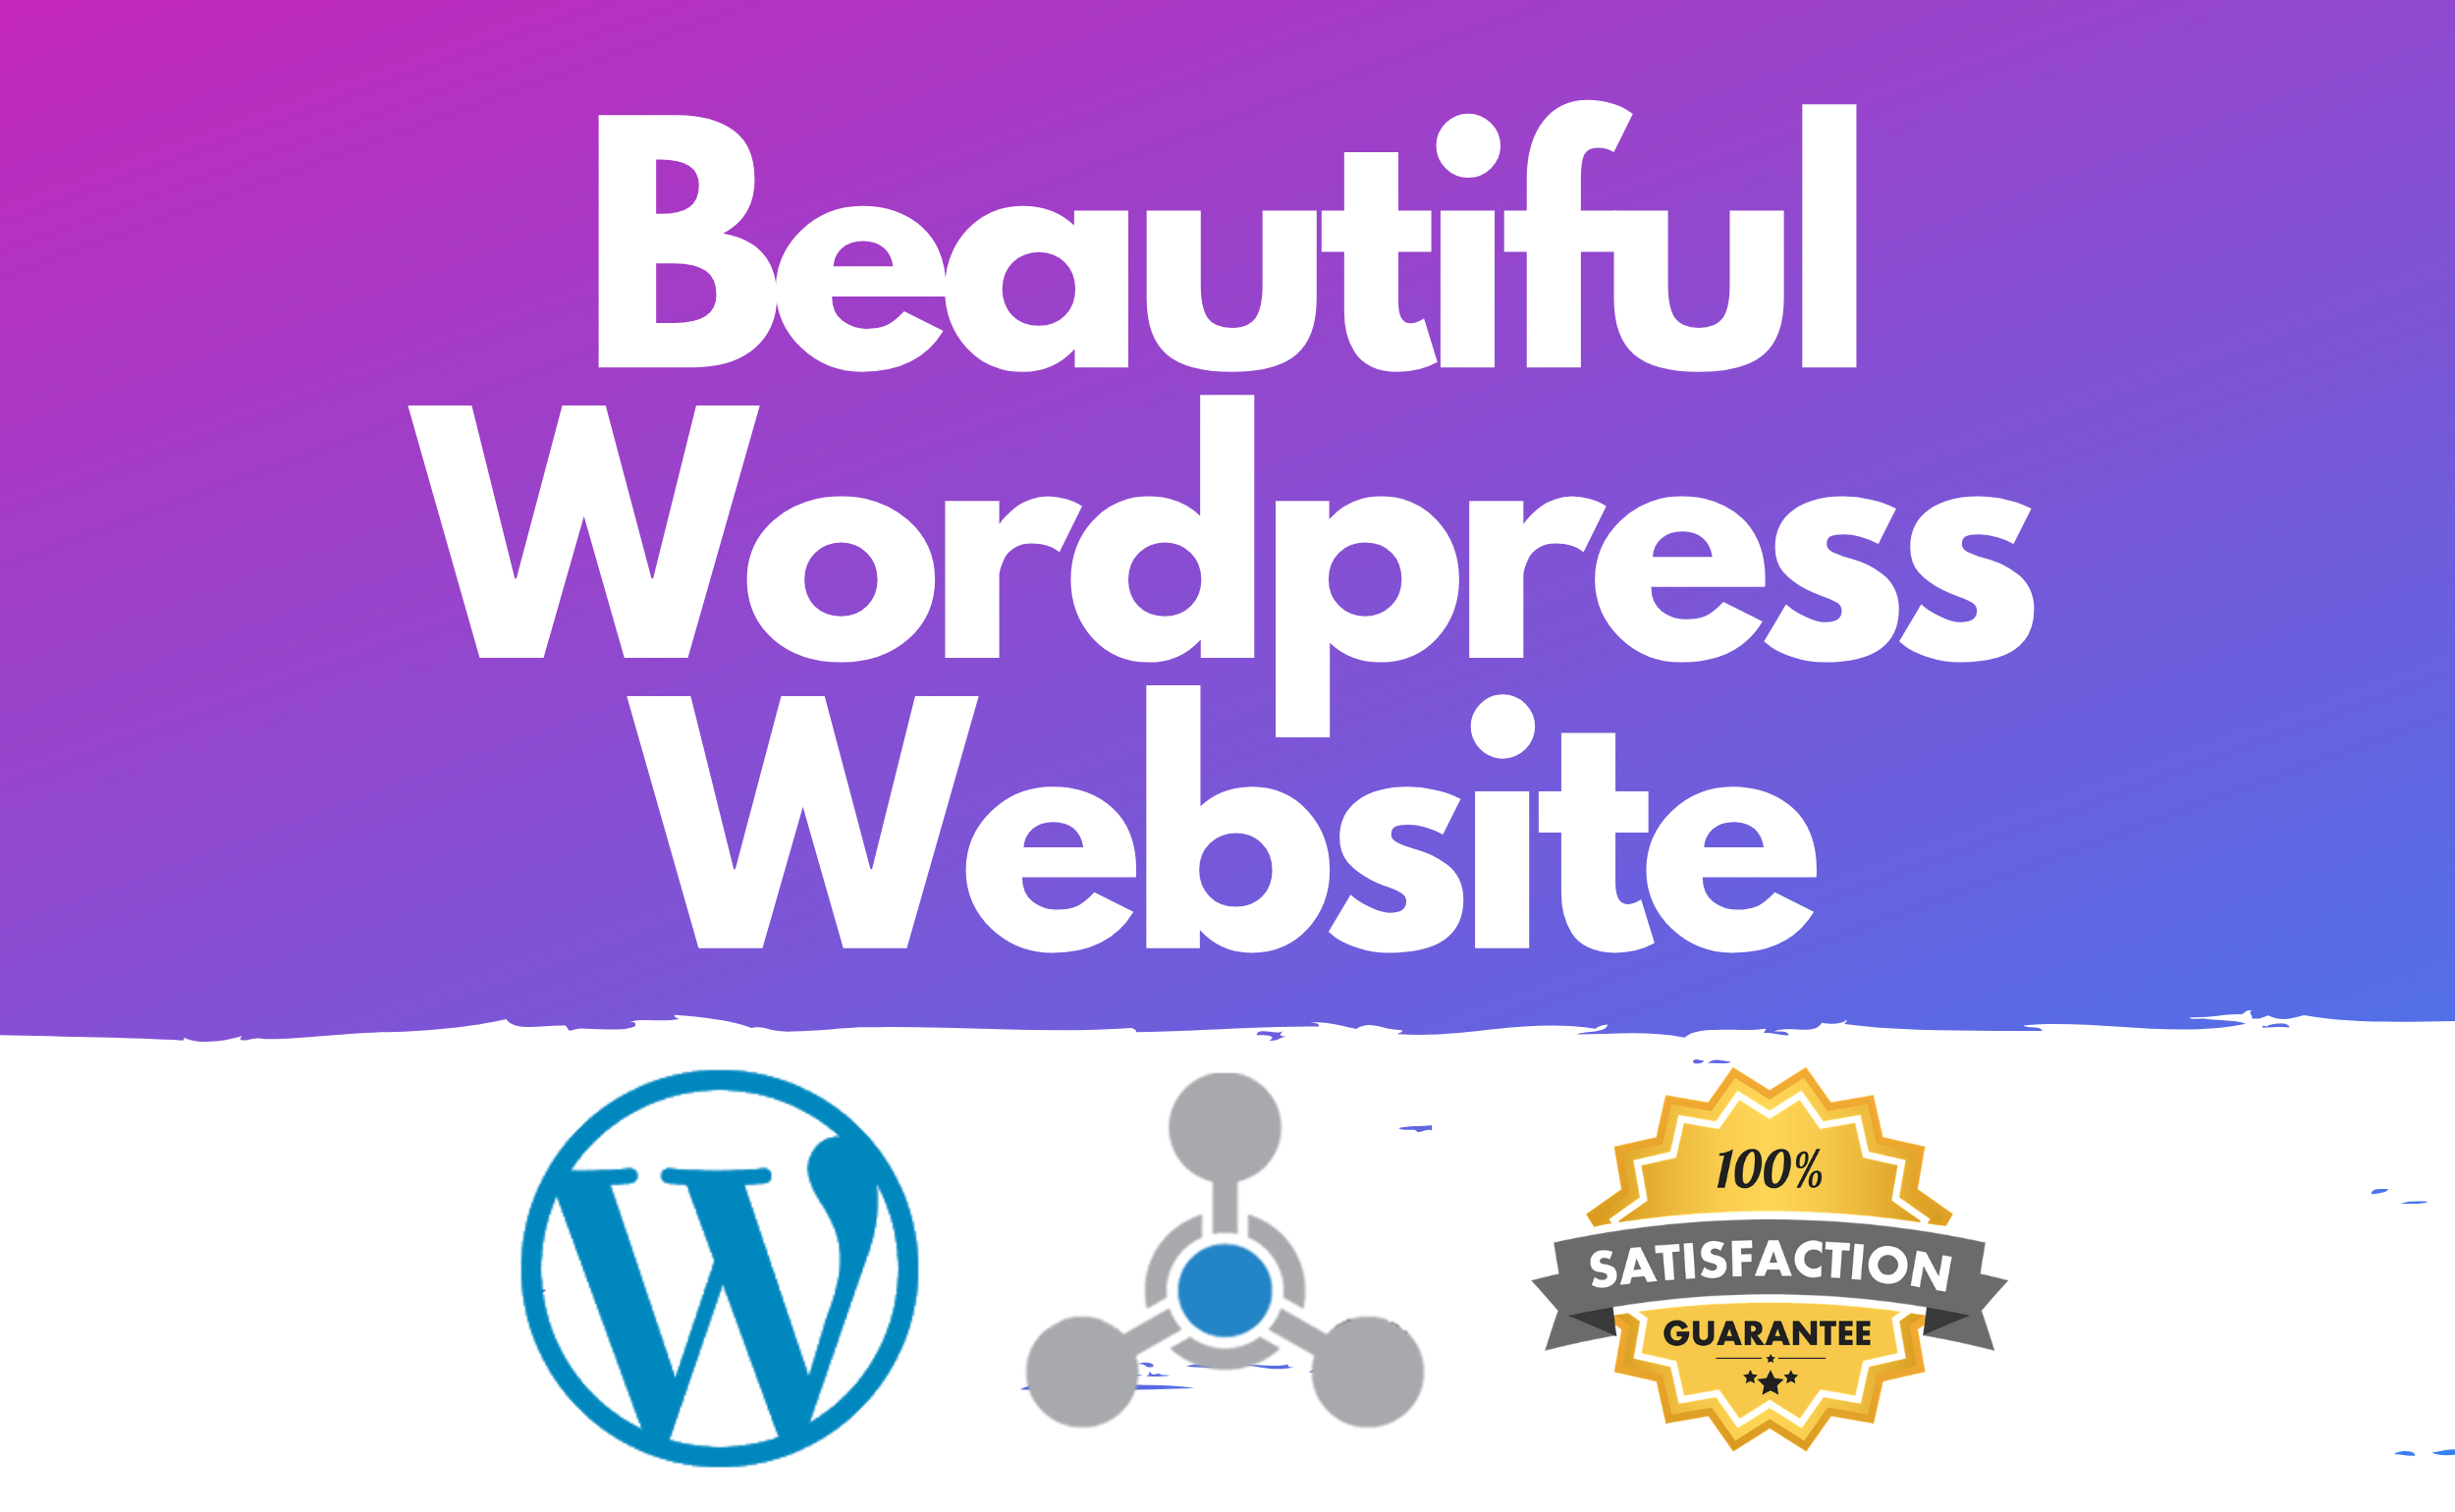 I will make a Beautiful WordPress Website